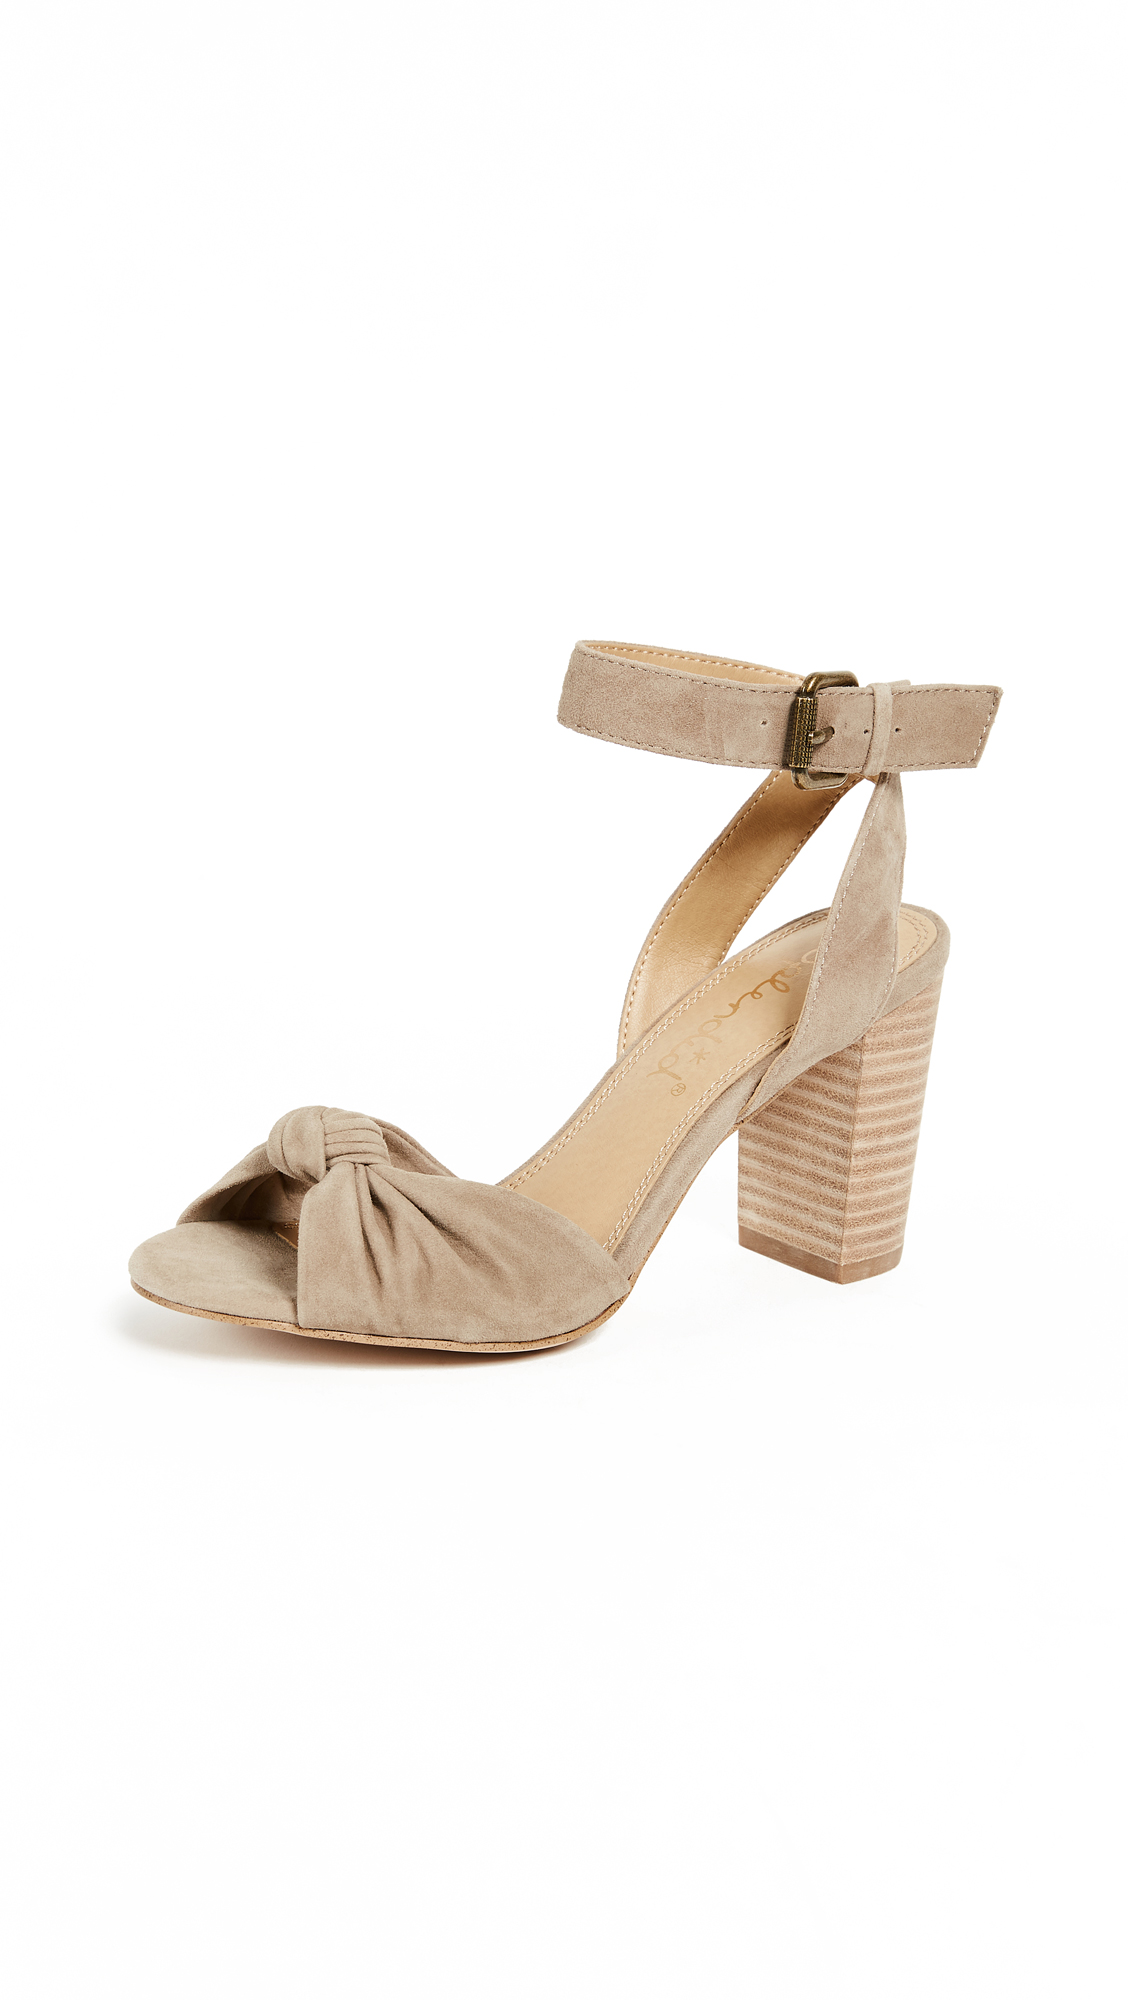 Splendid Bea Block Heel Sandals - Light Taupe